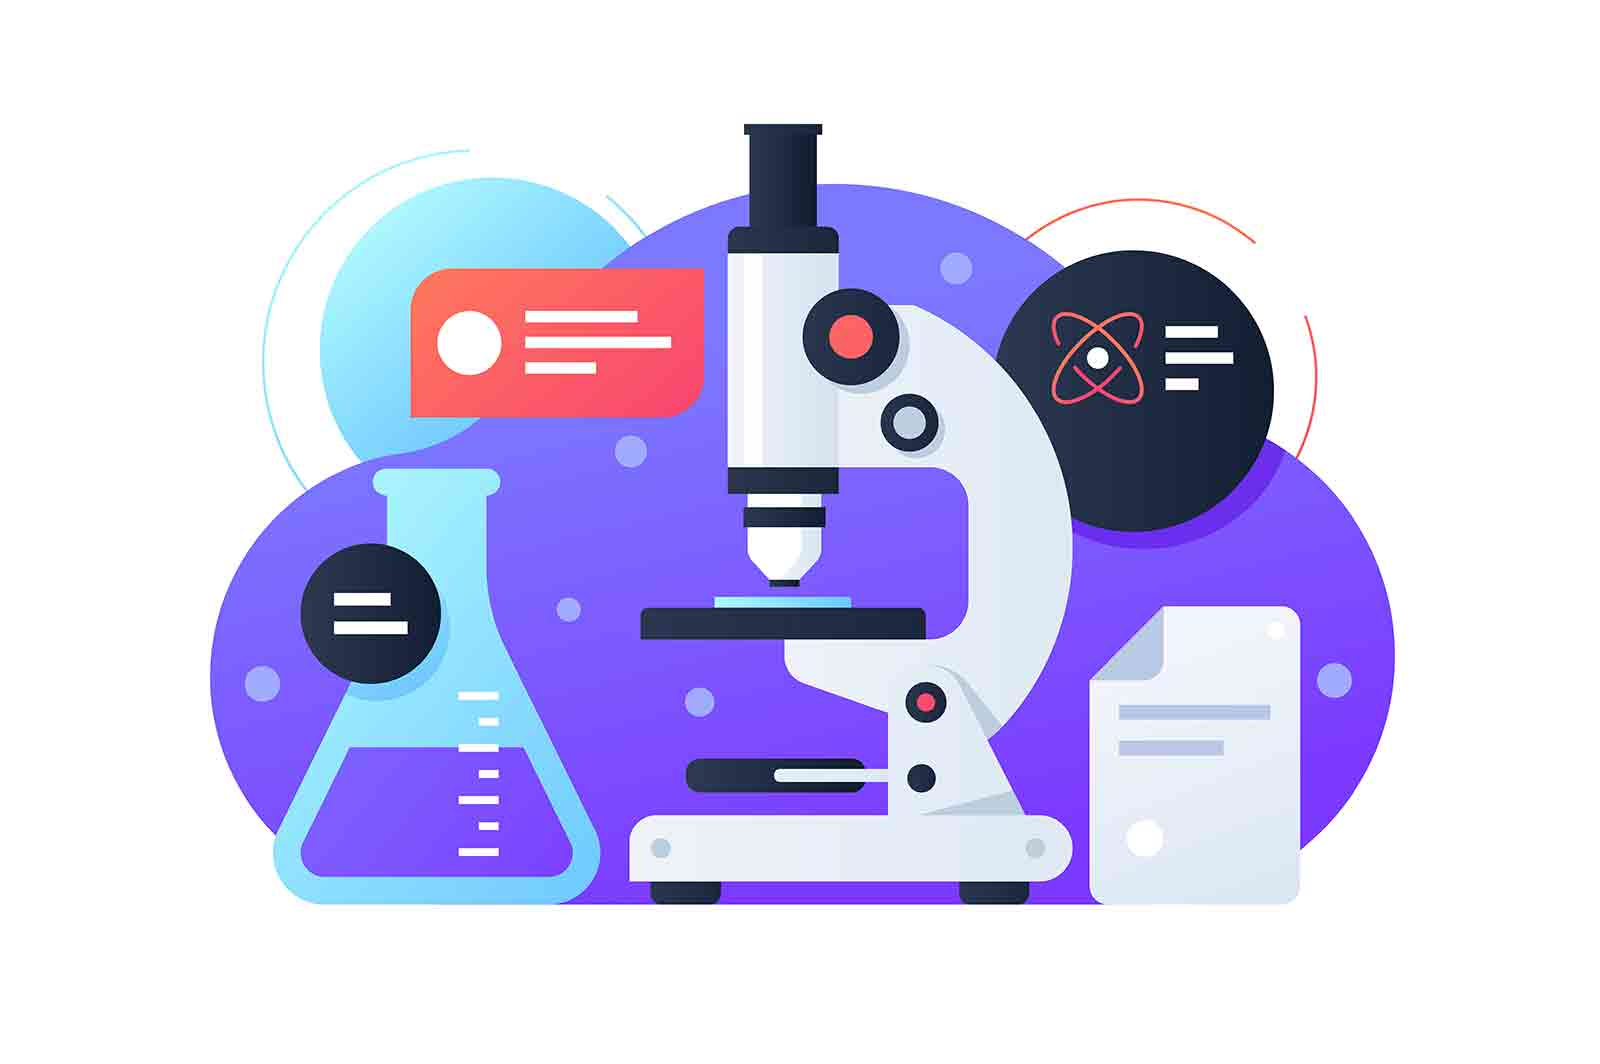 Scientific equipment for research: flask and microscope.Isolated concept icon for development in chemistry, medicine and biology. Vector illustration.